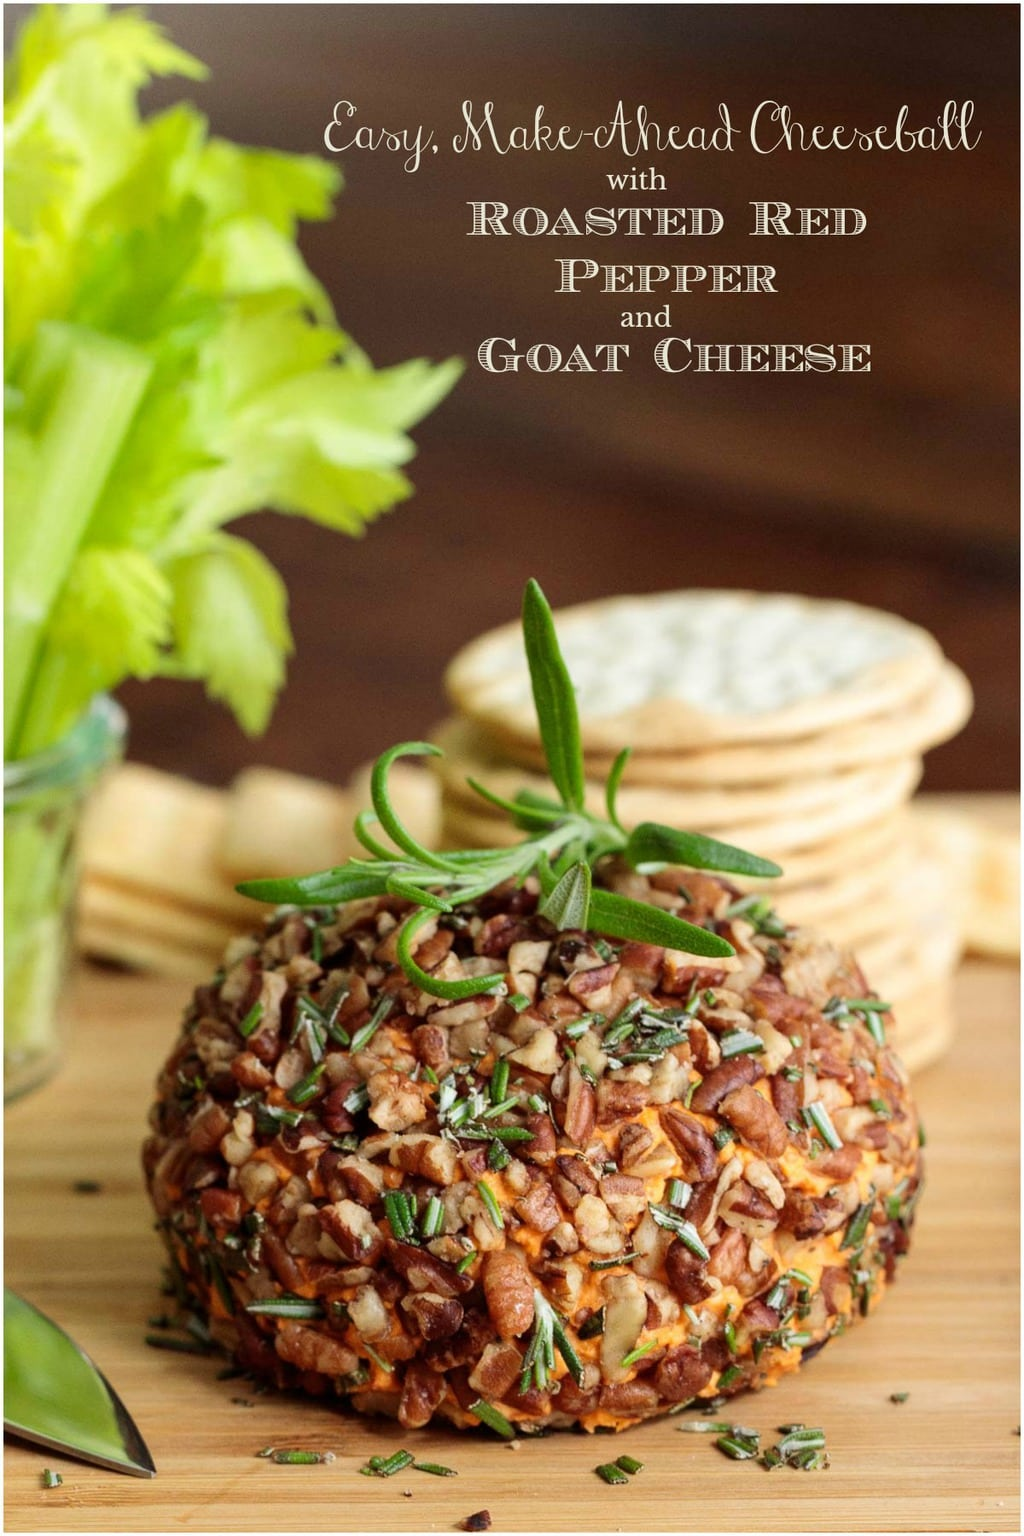 A quick, easy, super delicious appetizer that will bring wows! This make-ahead Roasted Red Pepper Goat Cheese Ball is party-perfect! #easycheeseball, #goatcheese, #roastedredpeppers, #easyappetizer